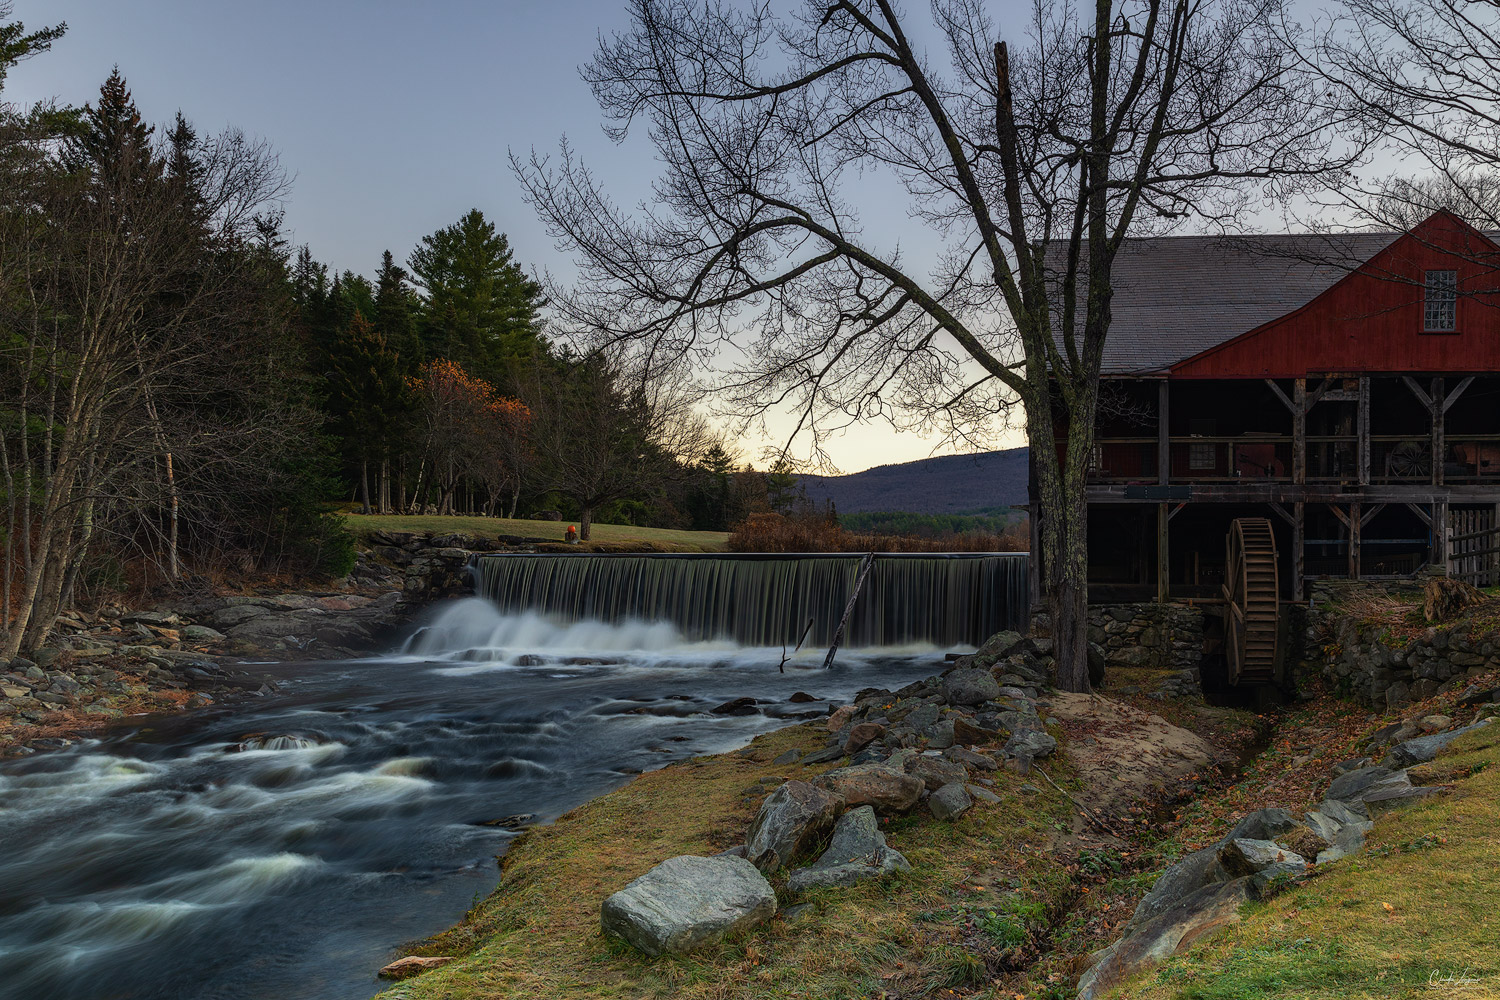 View of The Old Mill Museum and falls in Weston in Vermont.